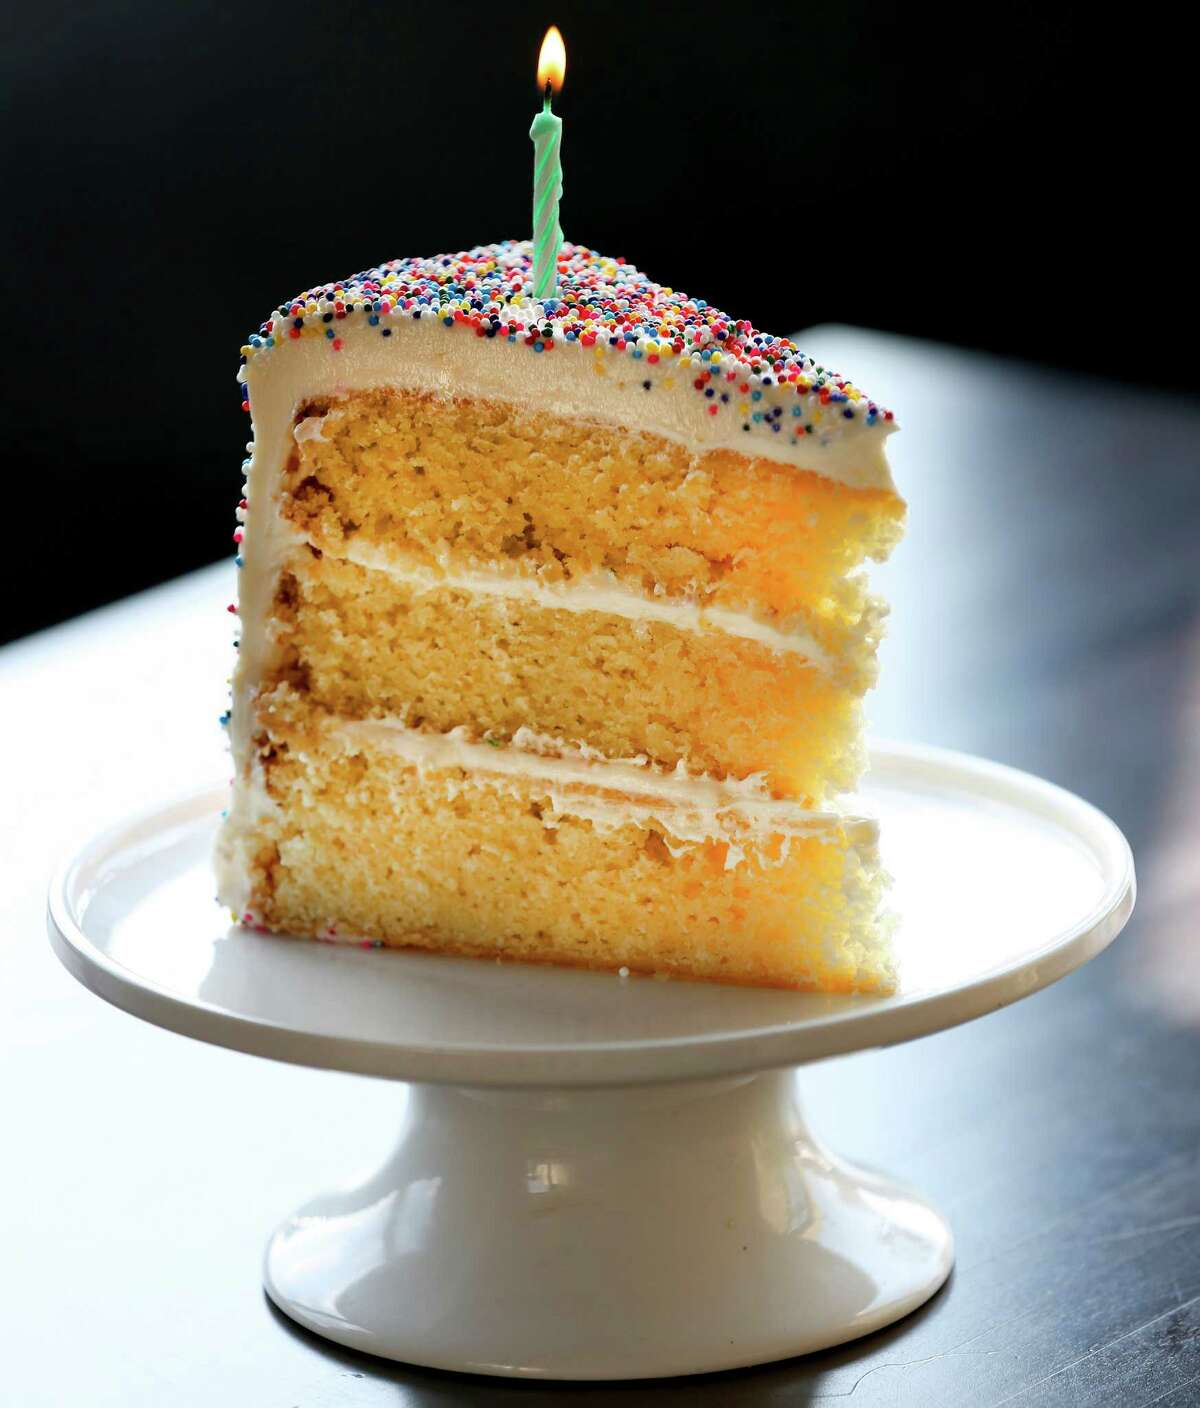 The General Public includes only one dessert on its menu: birthday cake, complete with a candle and sprinkles.